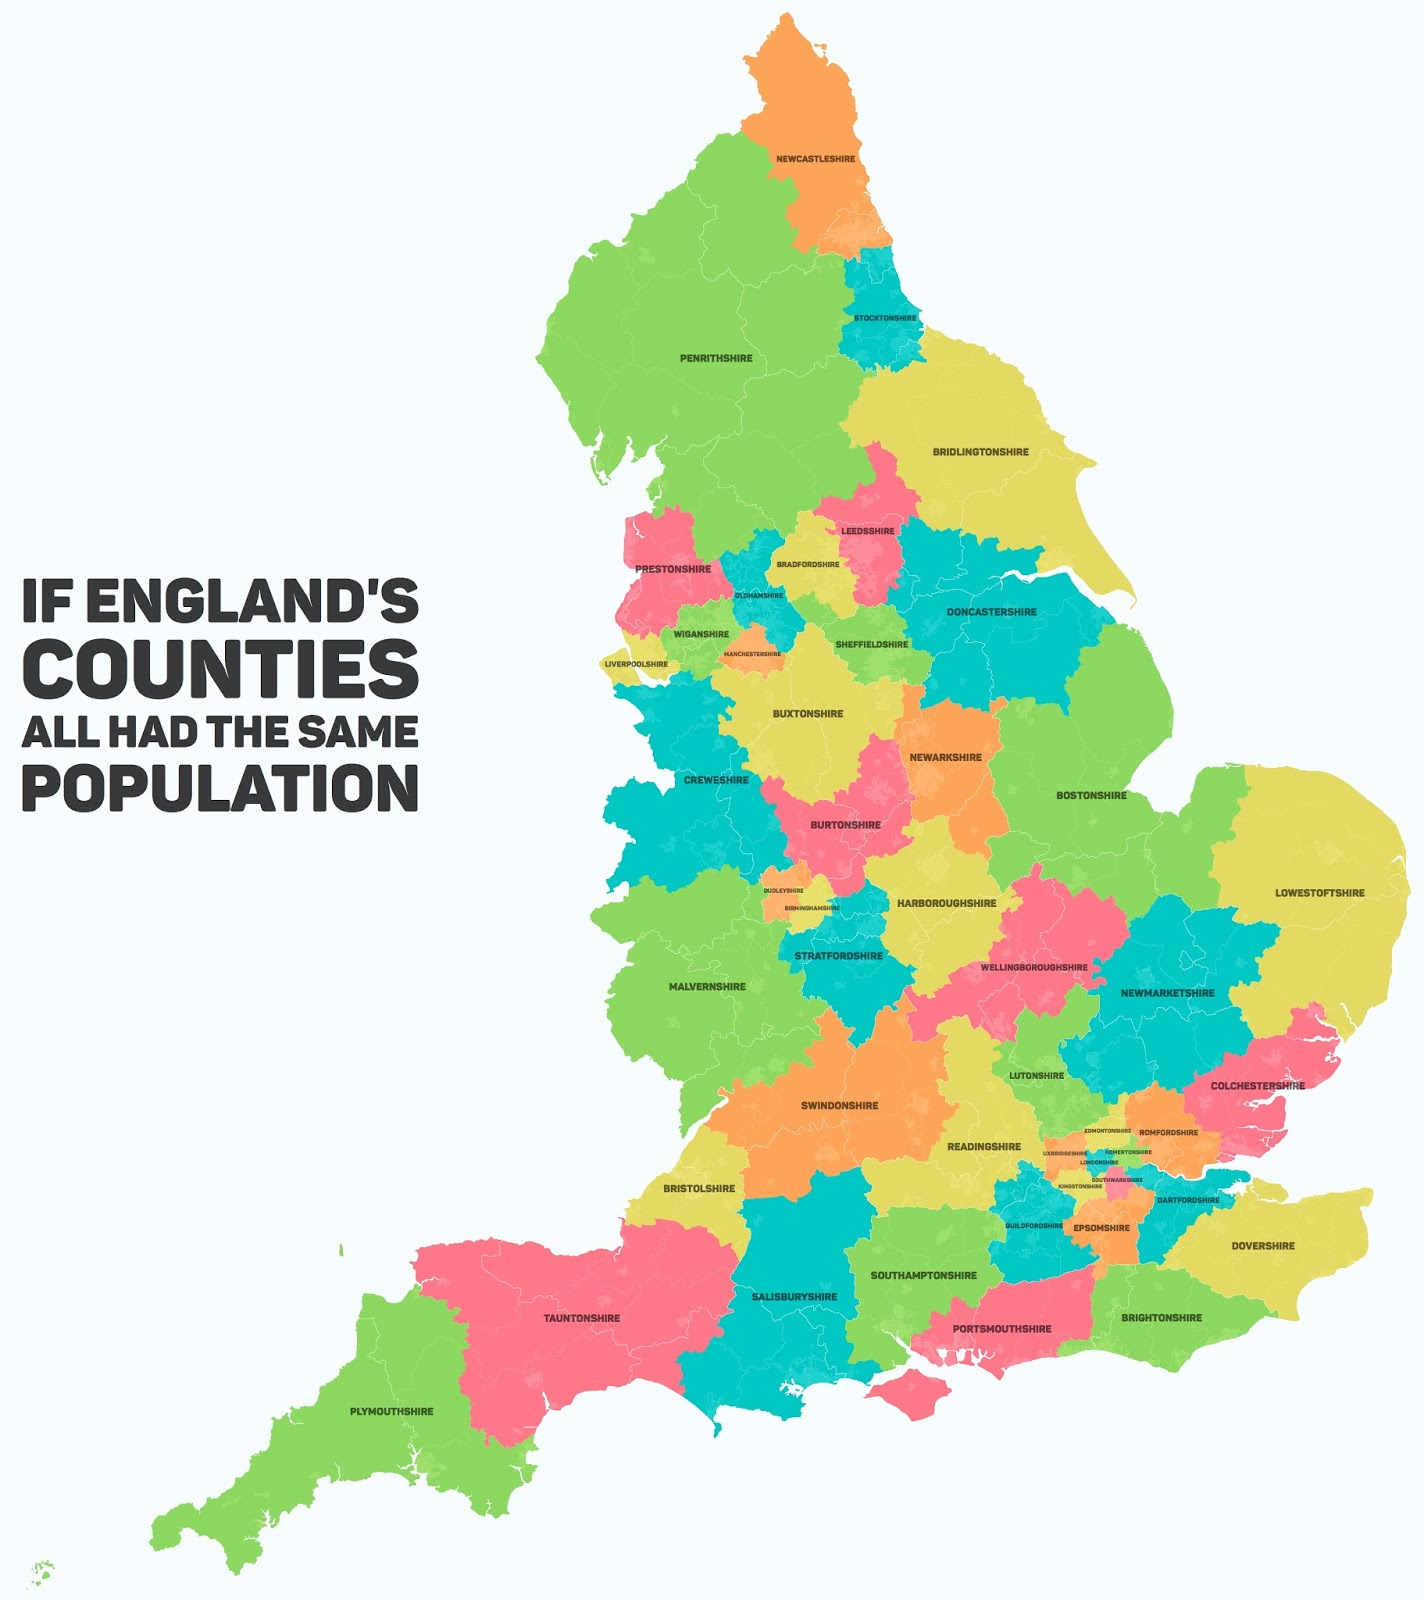 If England's counties all has the same population